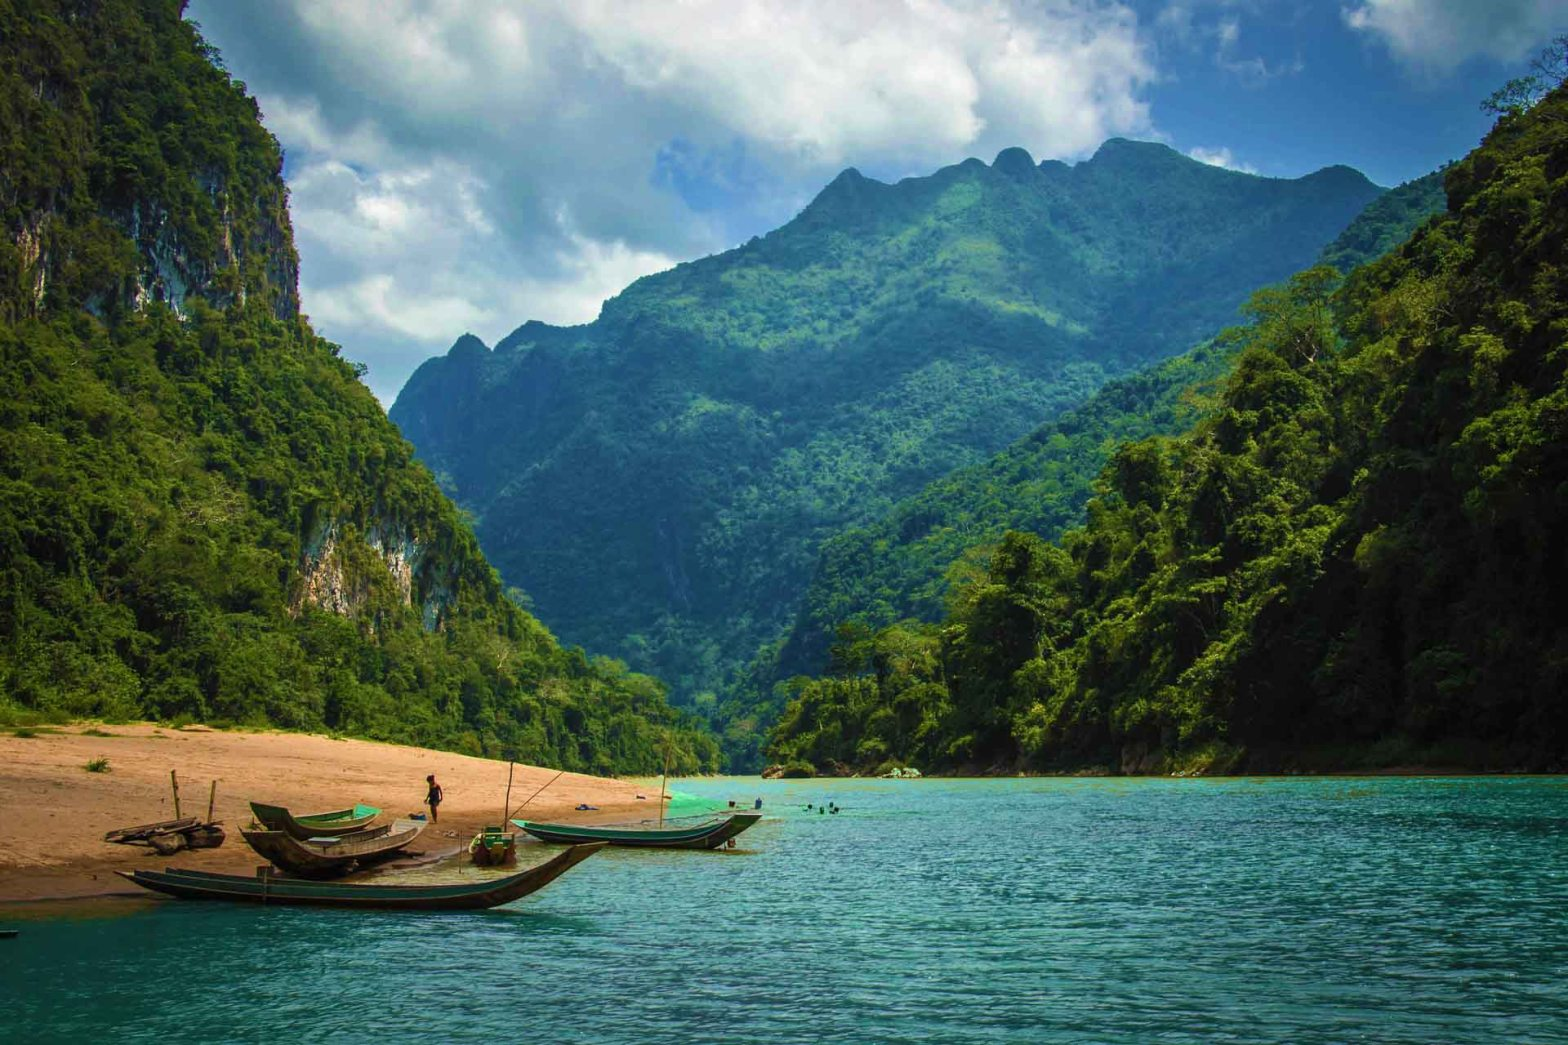 Laos is spotlighted by ecotourism